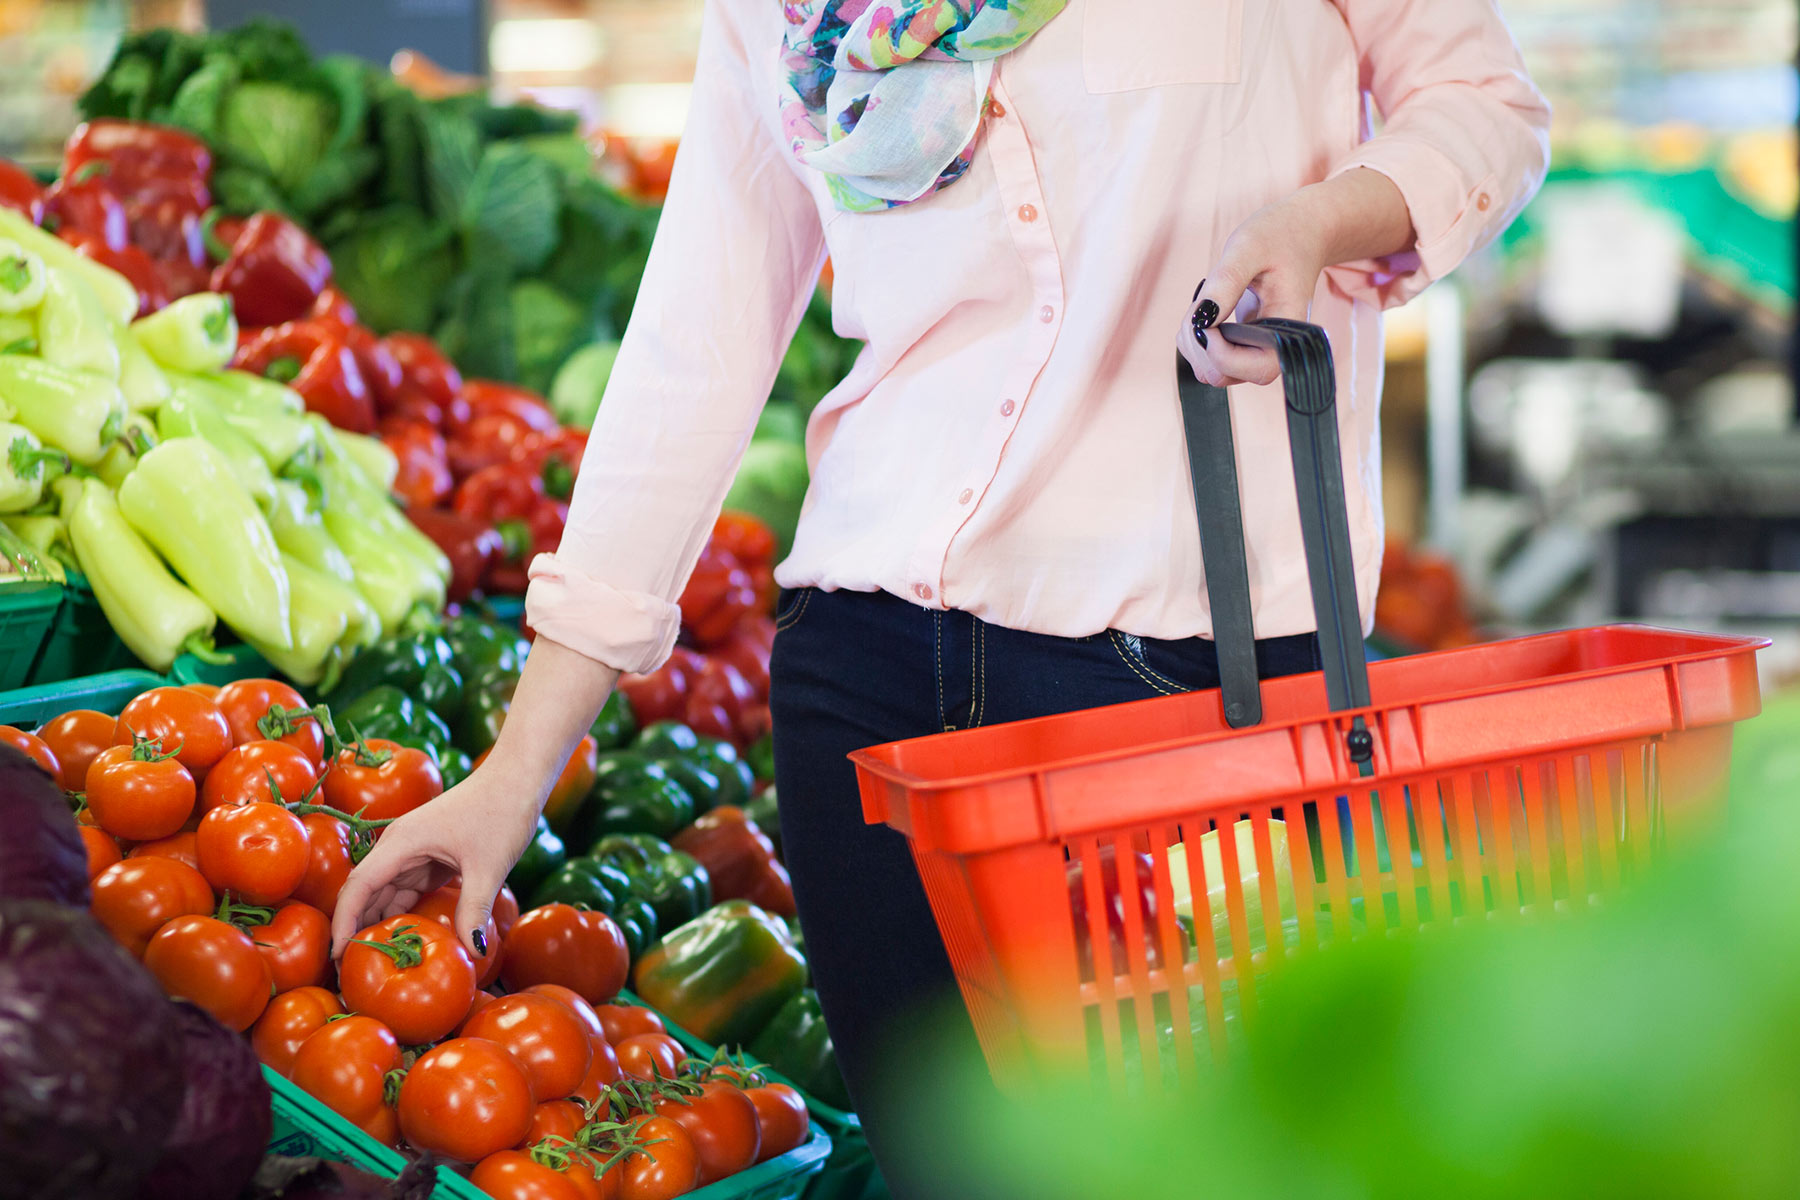 Make choices about the food they buy in order to support sustainable farming